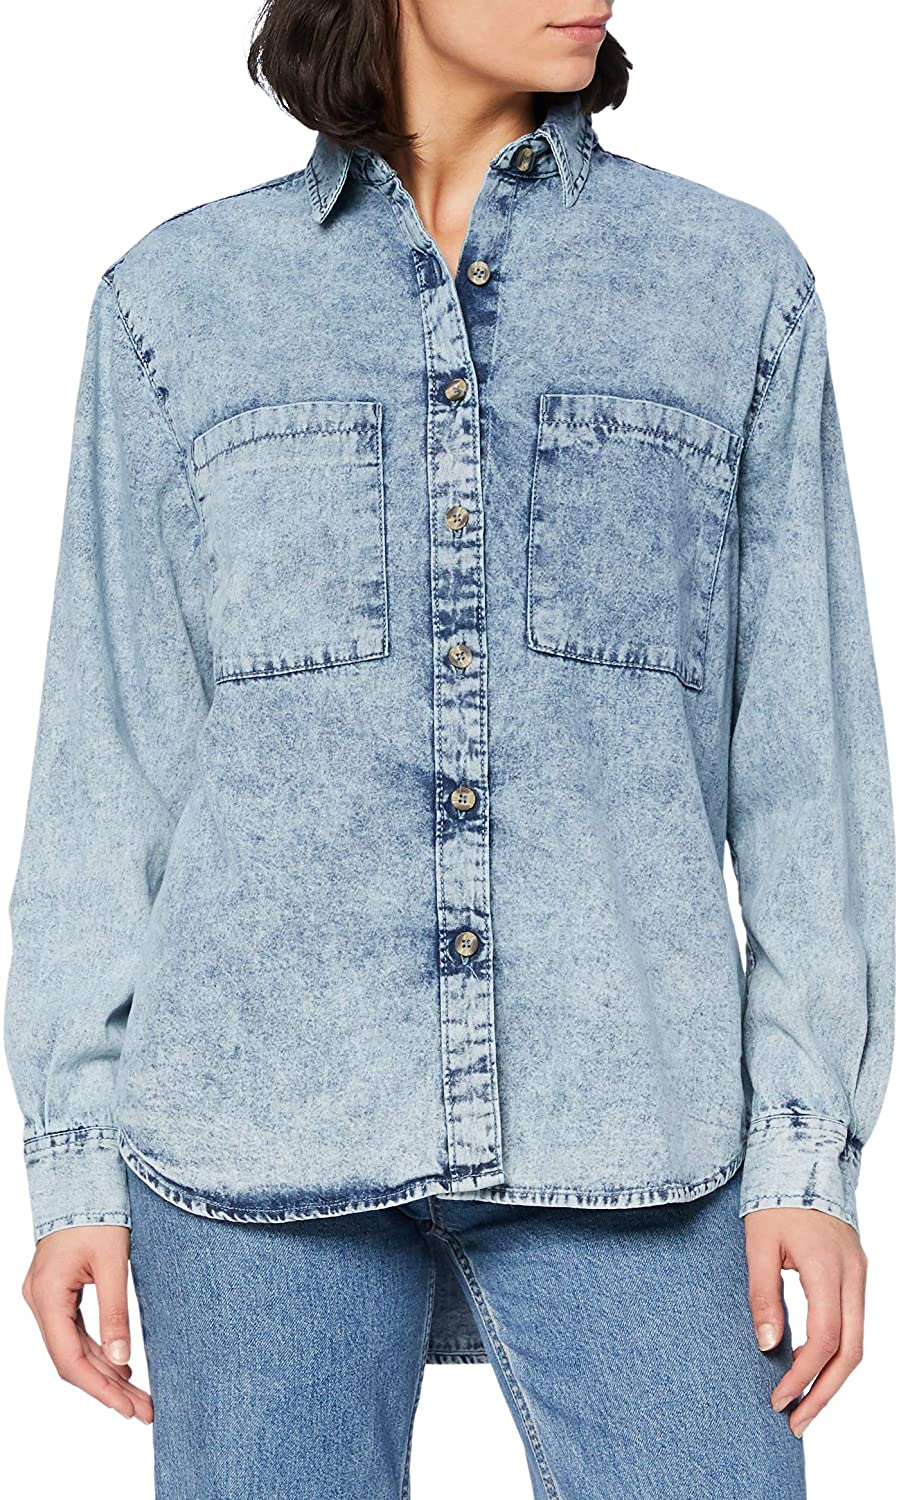 Urban Classics Women's Ladies Denim Oversized Shirt